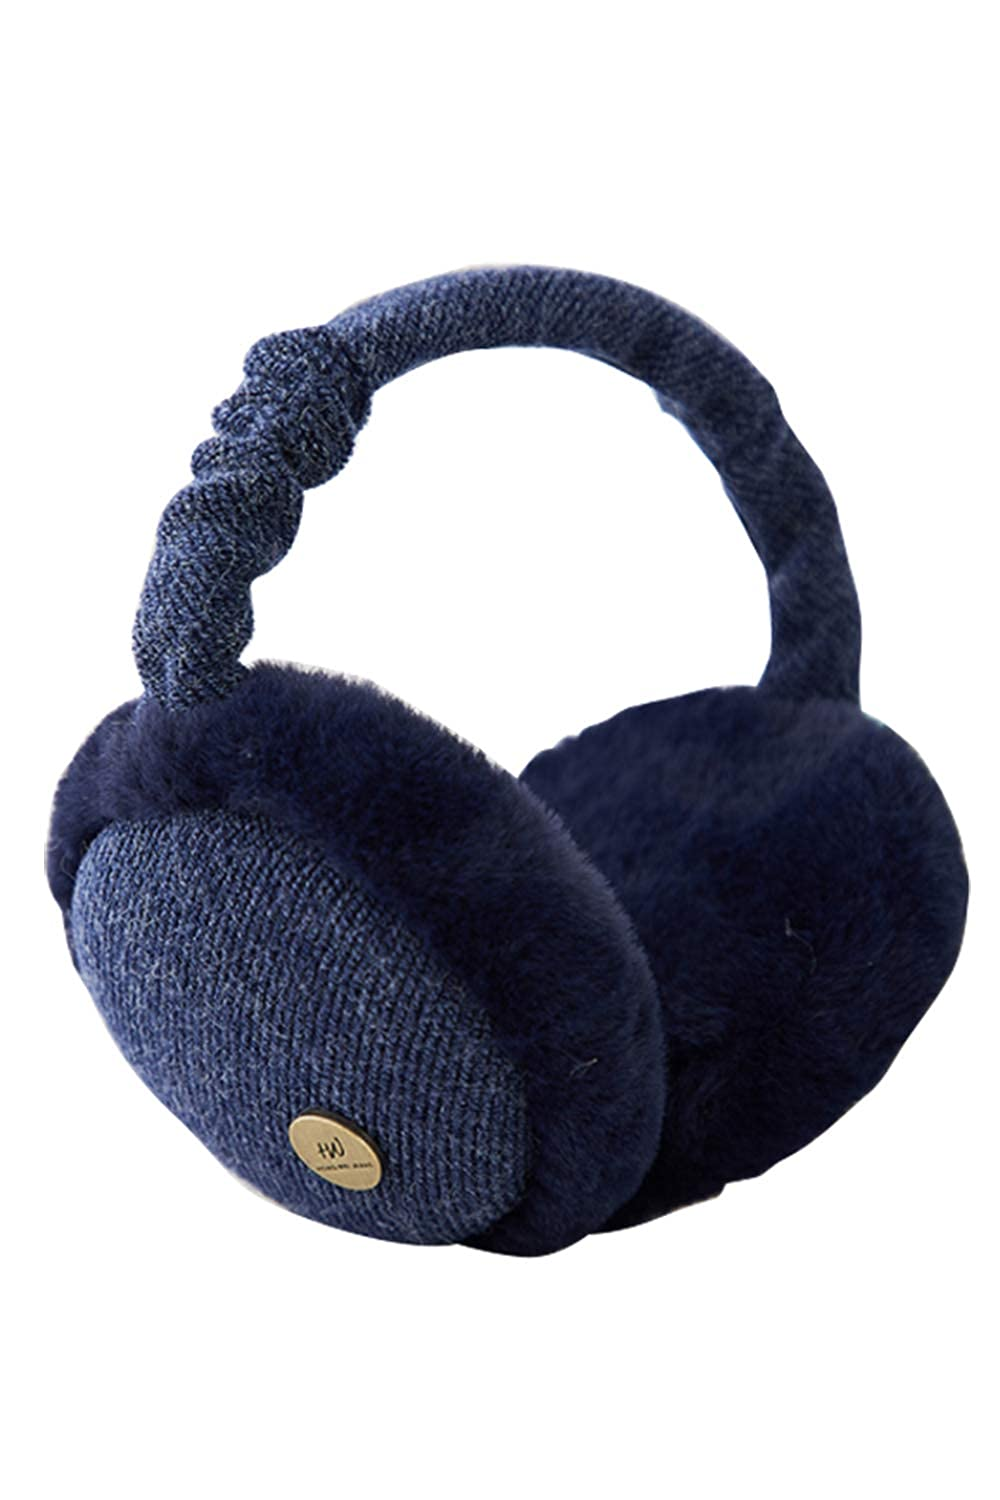 Unisex Winter Earmuffs Foldable Faux Fur Windproof Fold Ear Warmers UKSN759-Navy-F